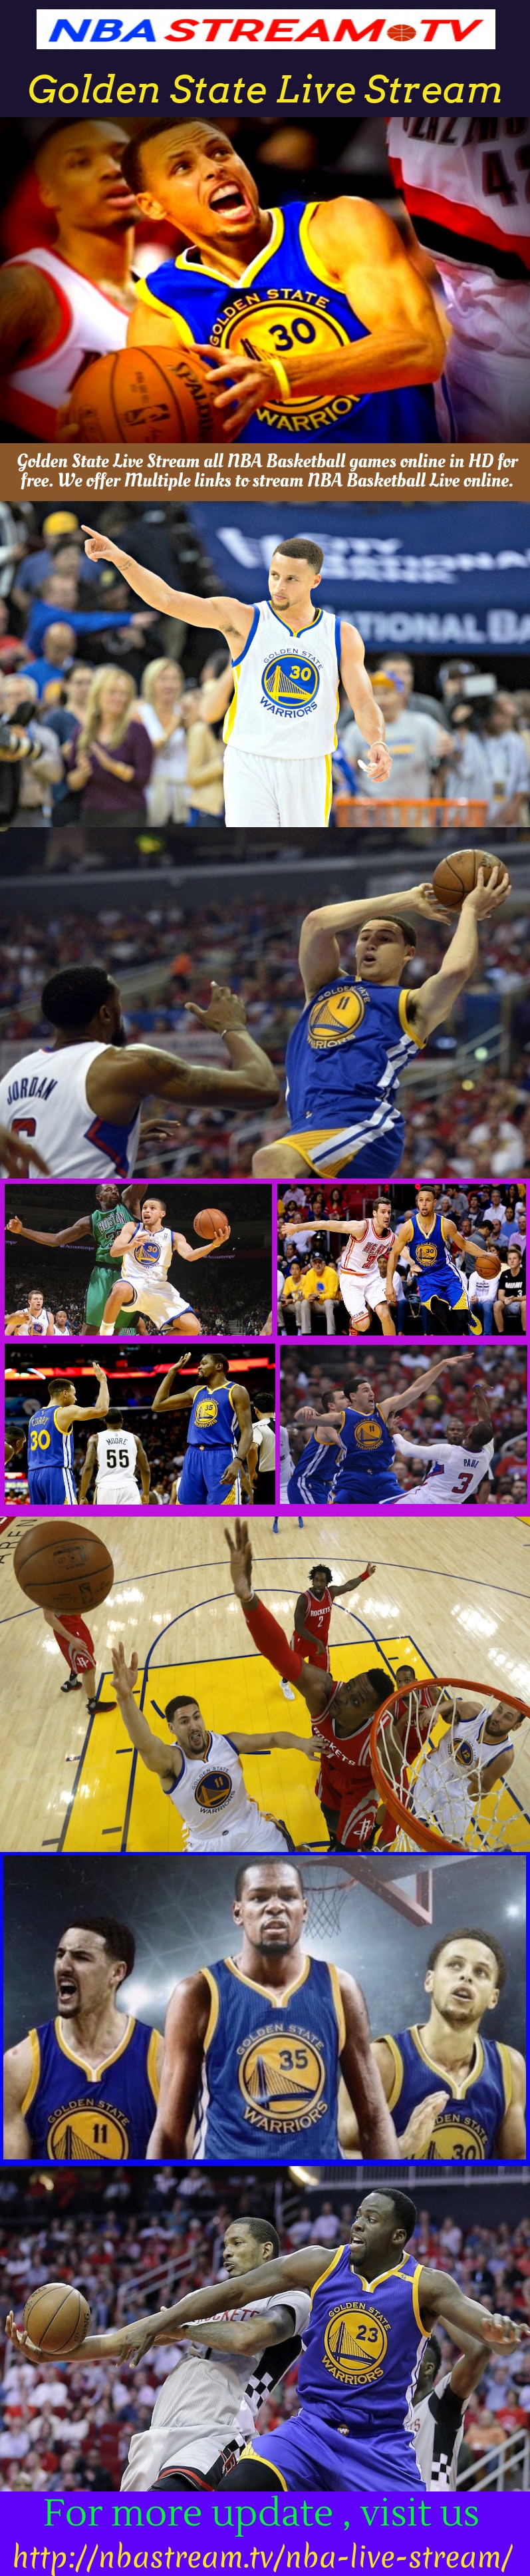 free stock photo of golden state live stream nba basketball live